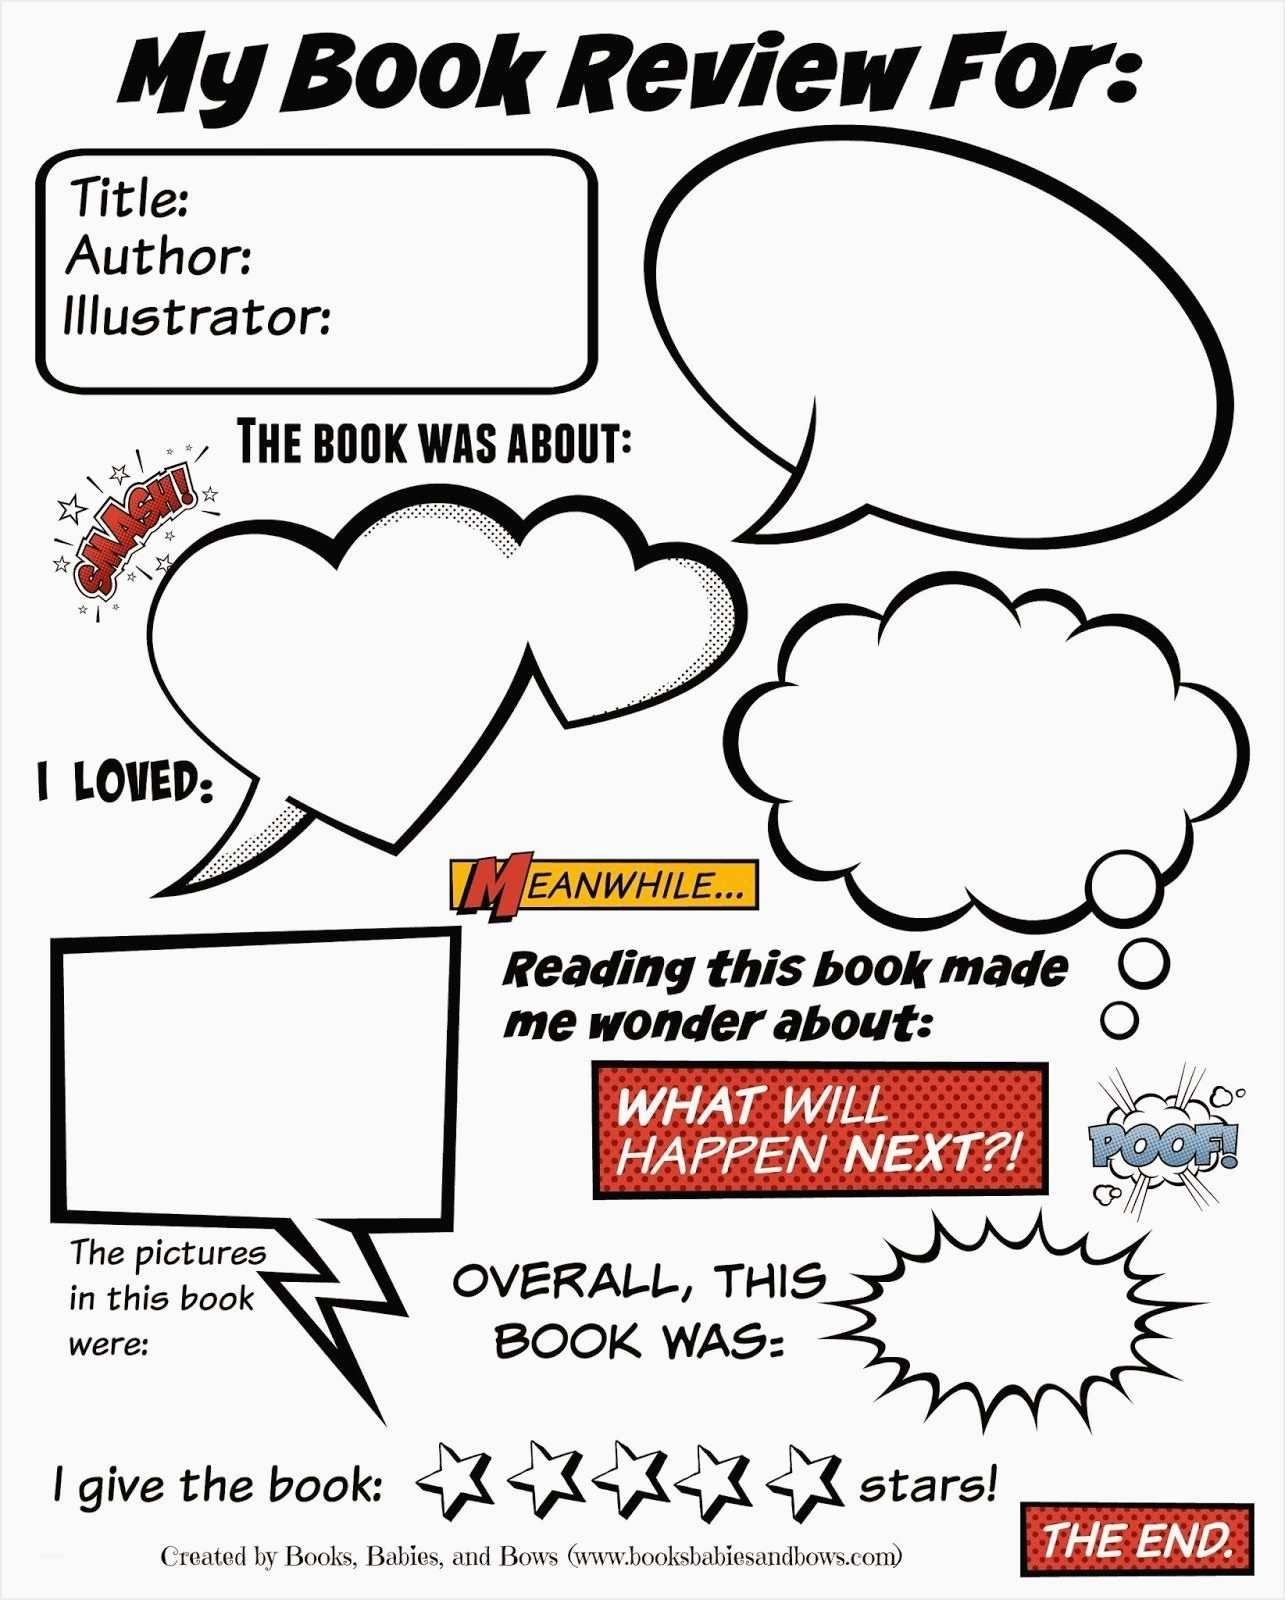 Movie Review Template Inspirational Books Babies And Bows